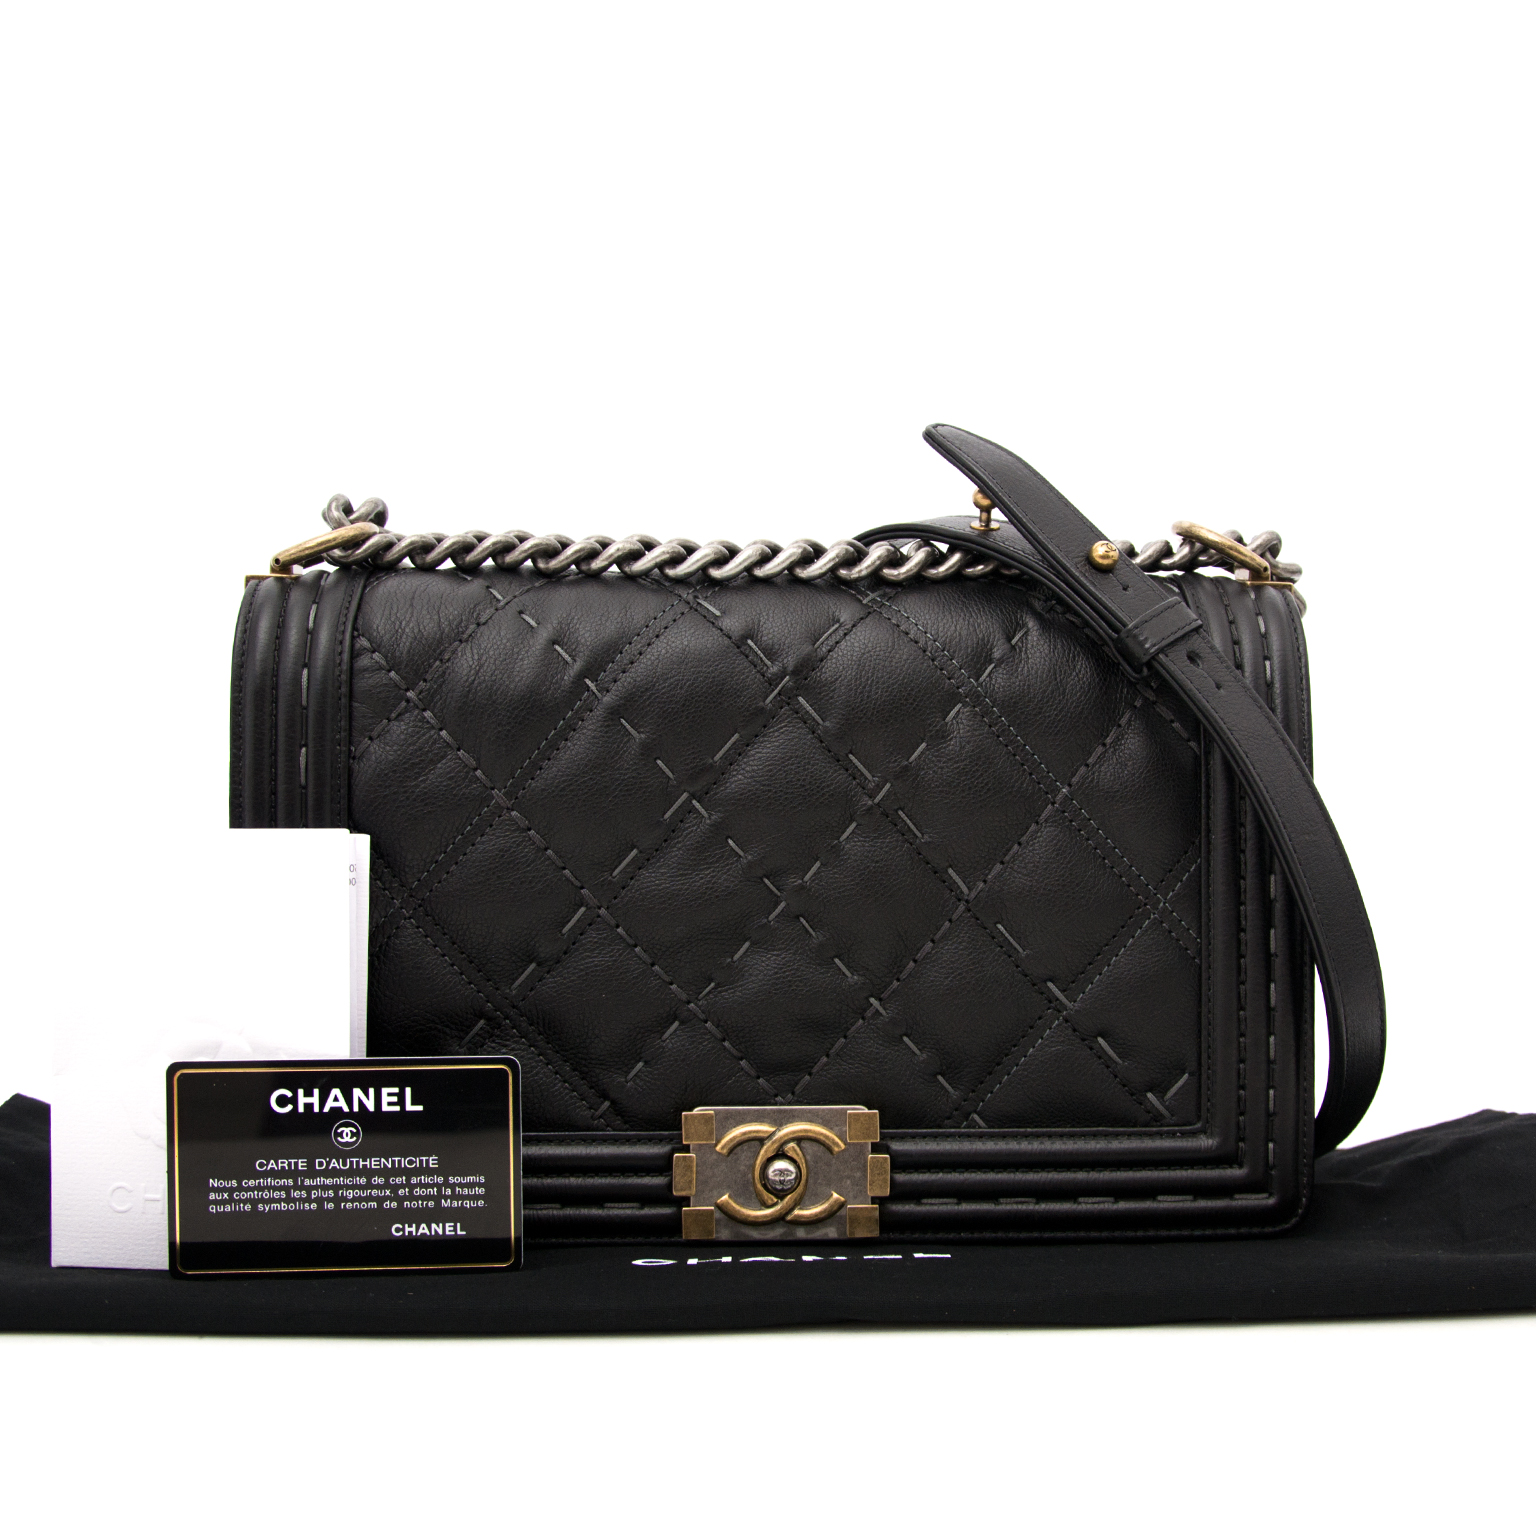 7083485a9daf Labellov Shop safe online: authentic vintage Chanel clothes, bags ...